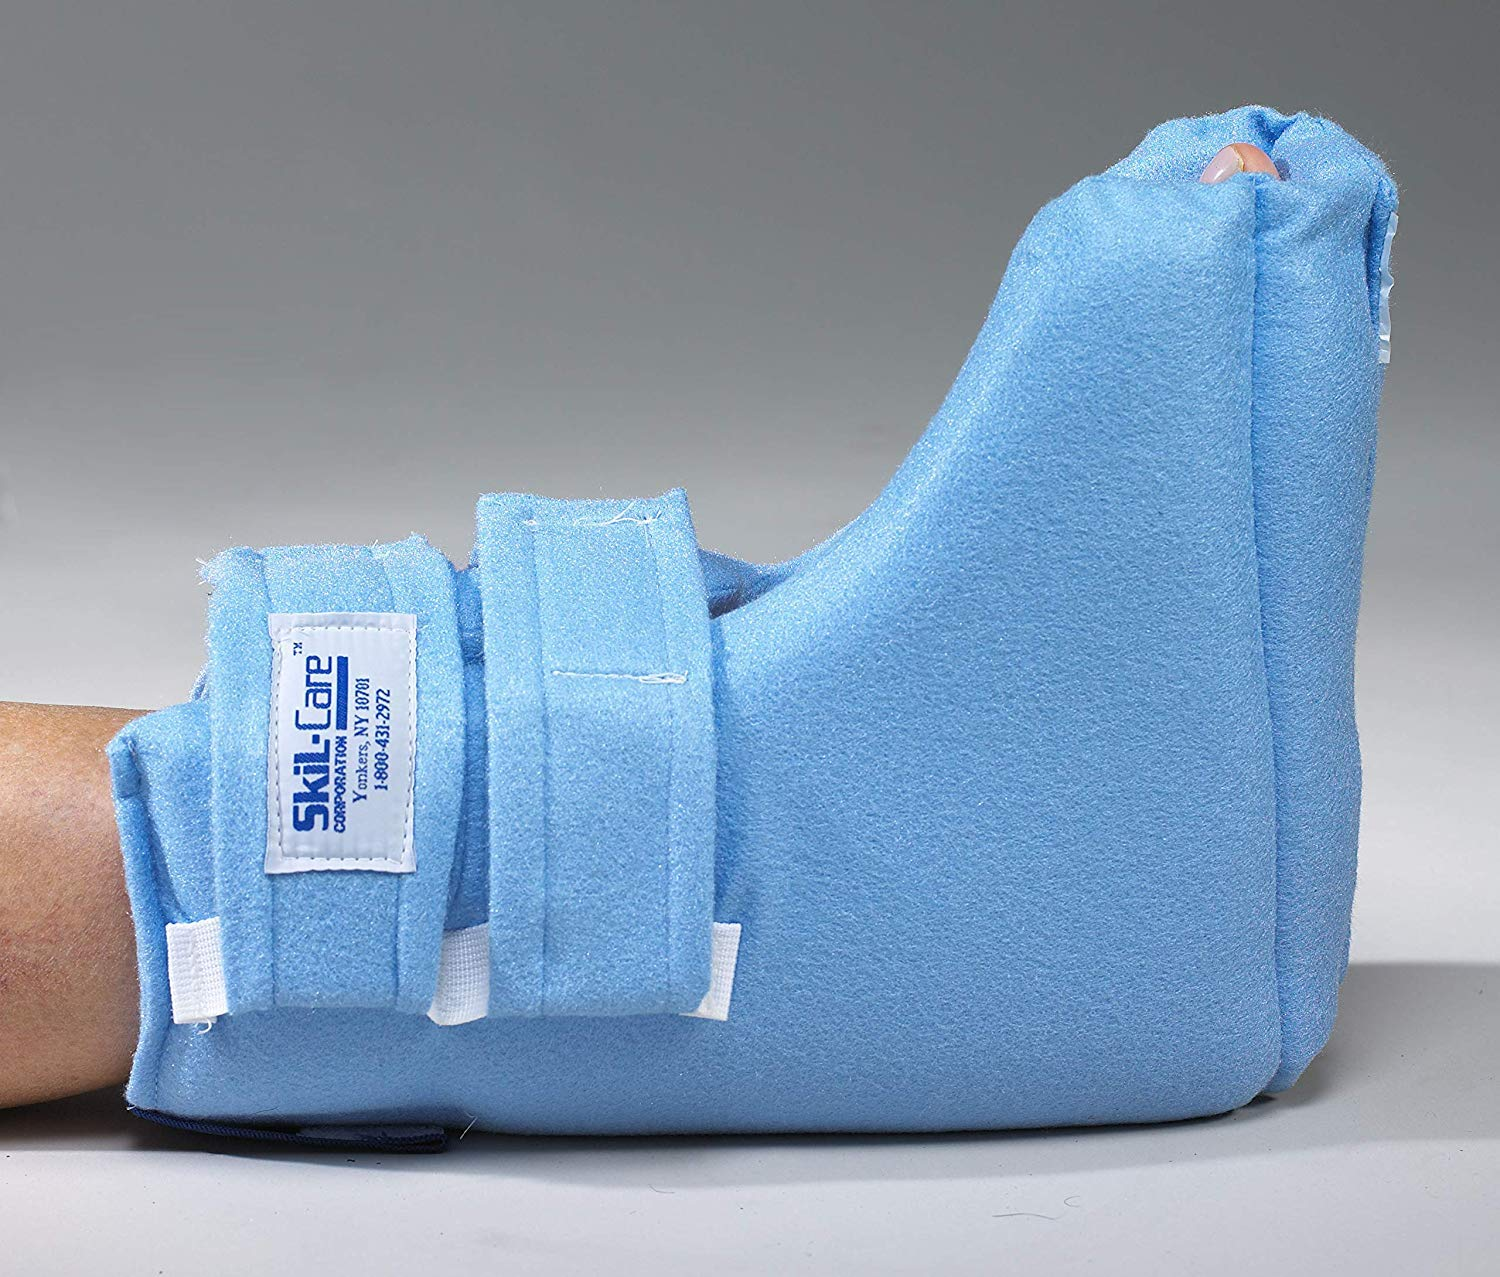 Heel-Float Heel Protector - Heel Cushion For Foot Injuries (Large/Extra Large) by Skil-Care